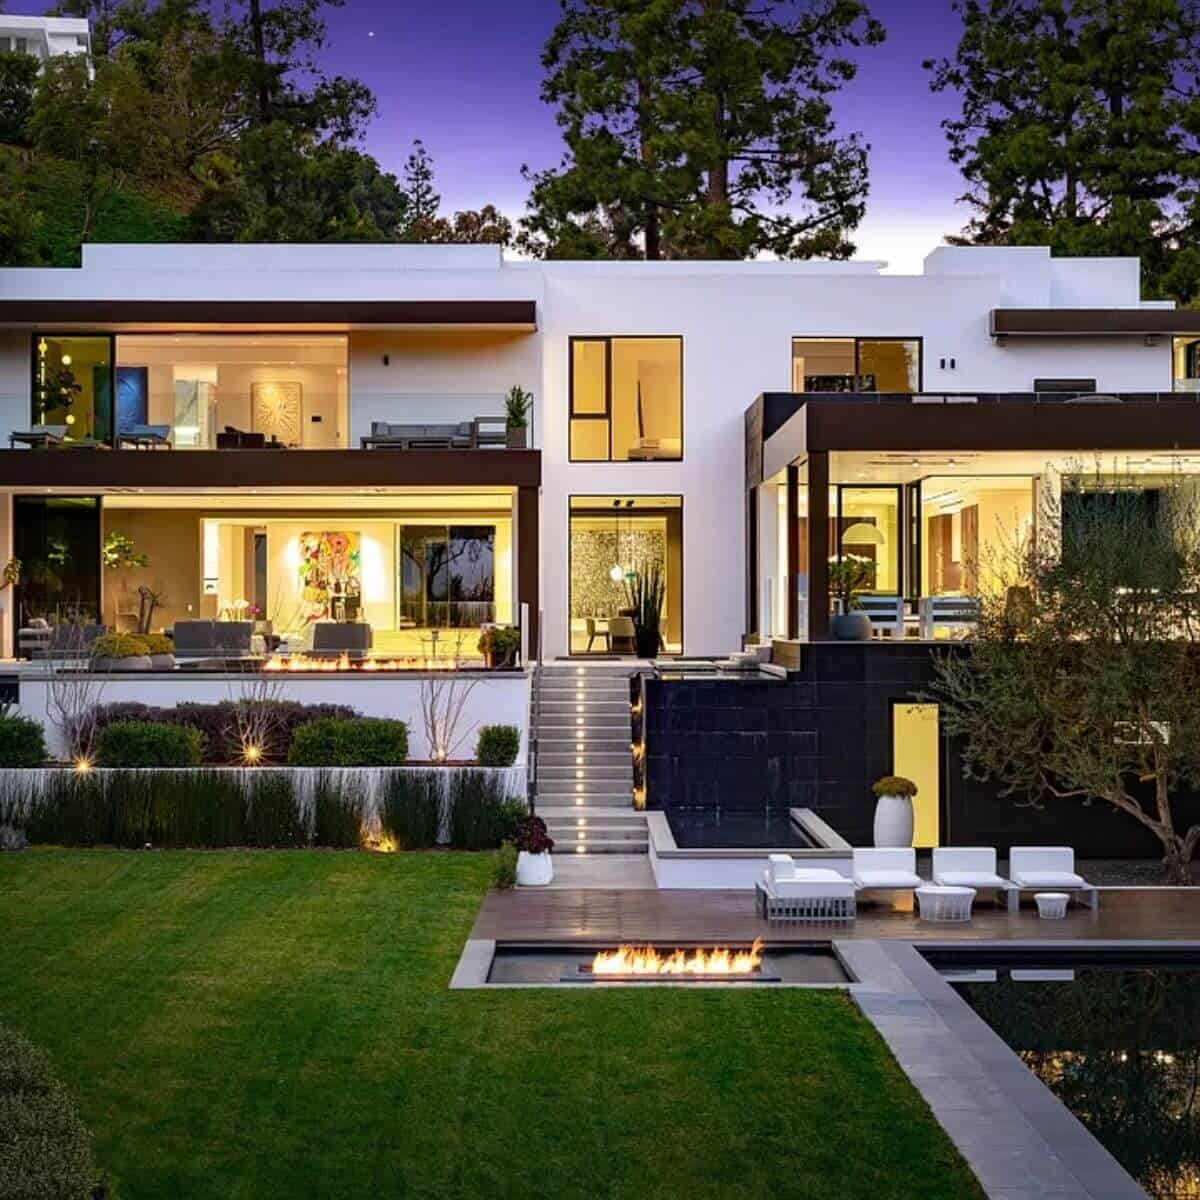 White and black modern mansion with a grass yard, fire pit, and pool.